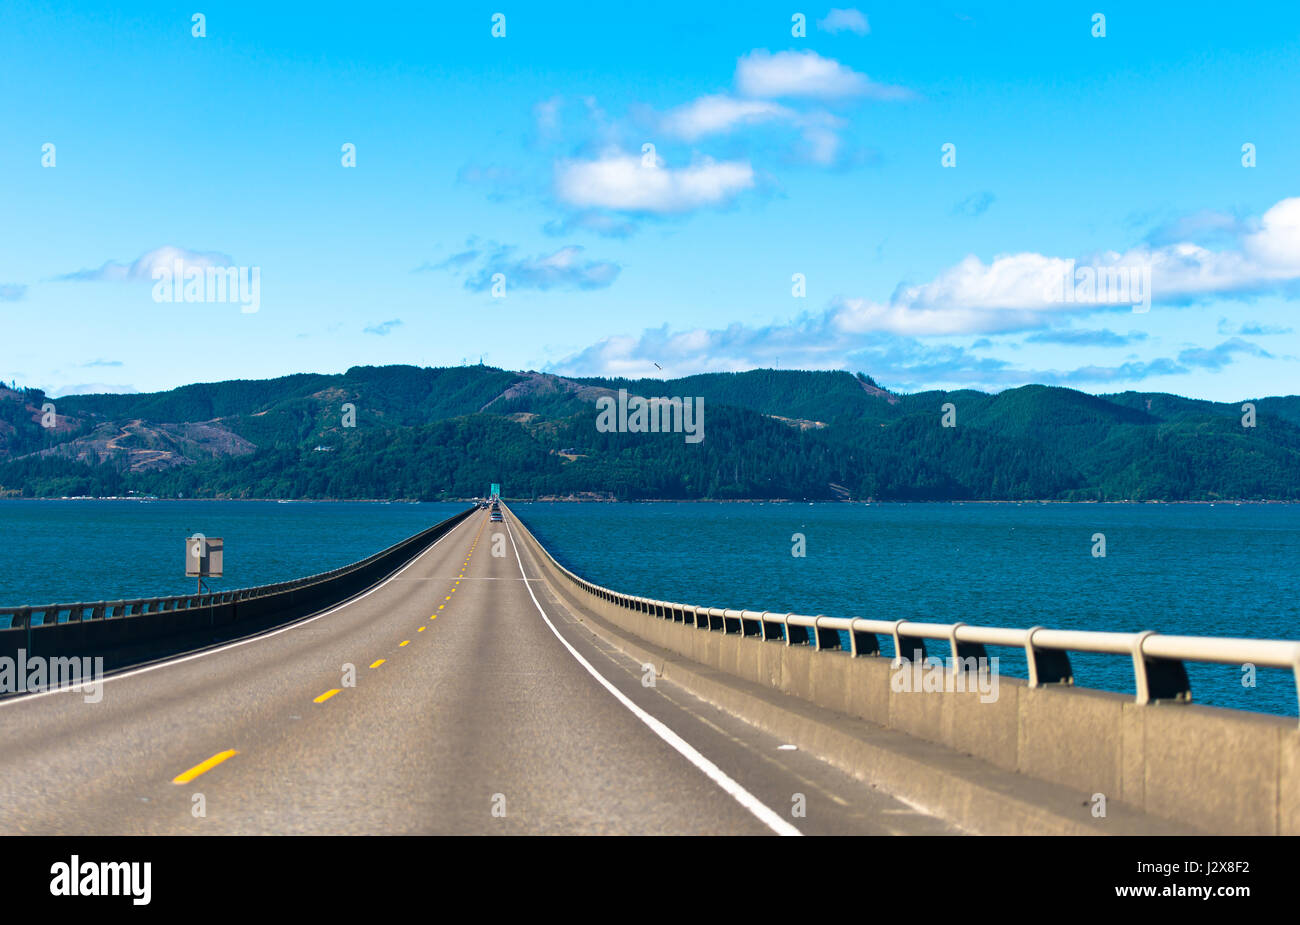 Long scenic road bridge with several lanes with raised sections and fencing in wide mouth of the Columbia River - Stock Image